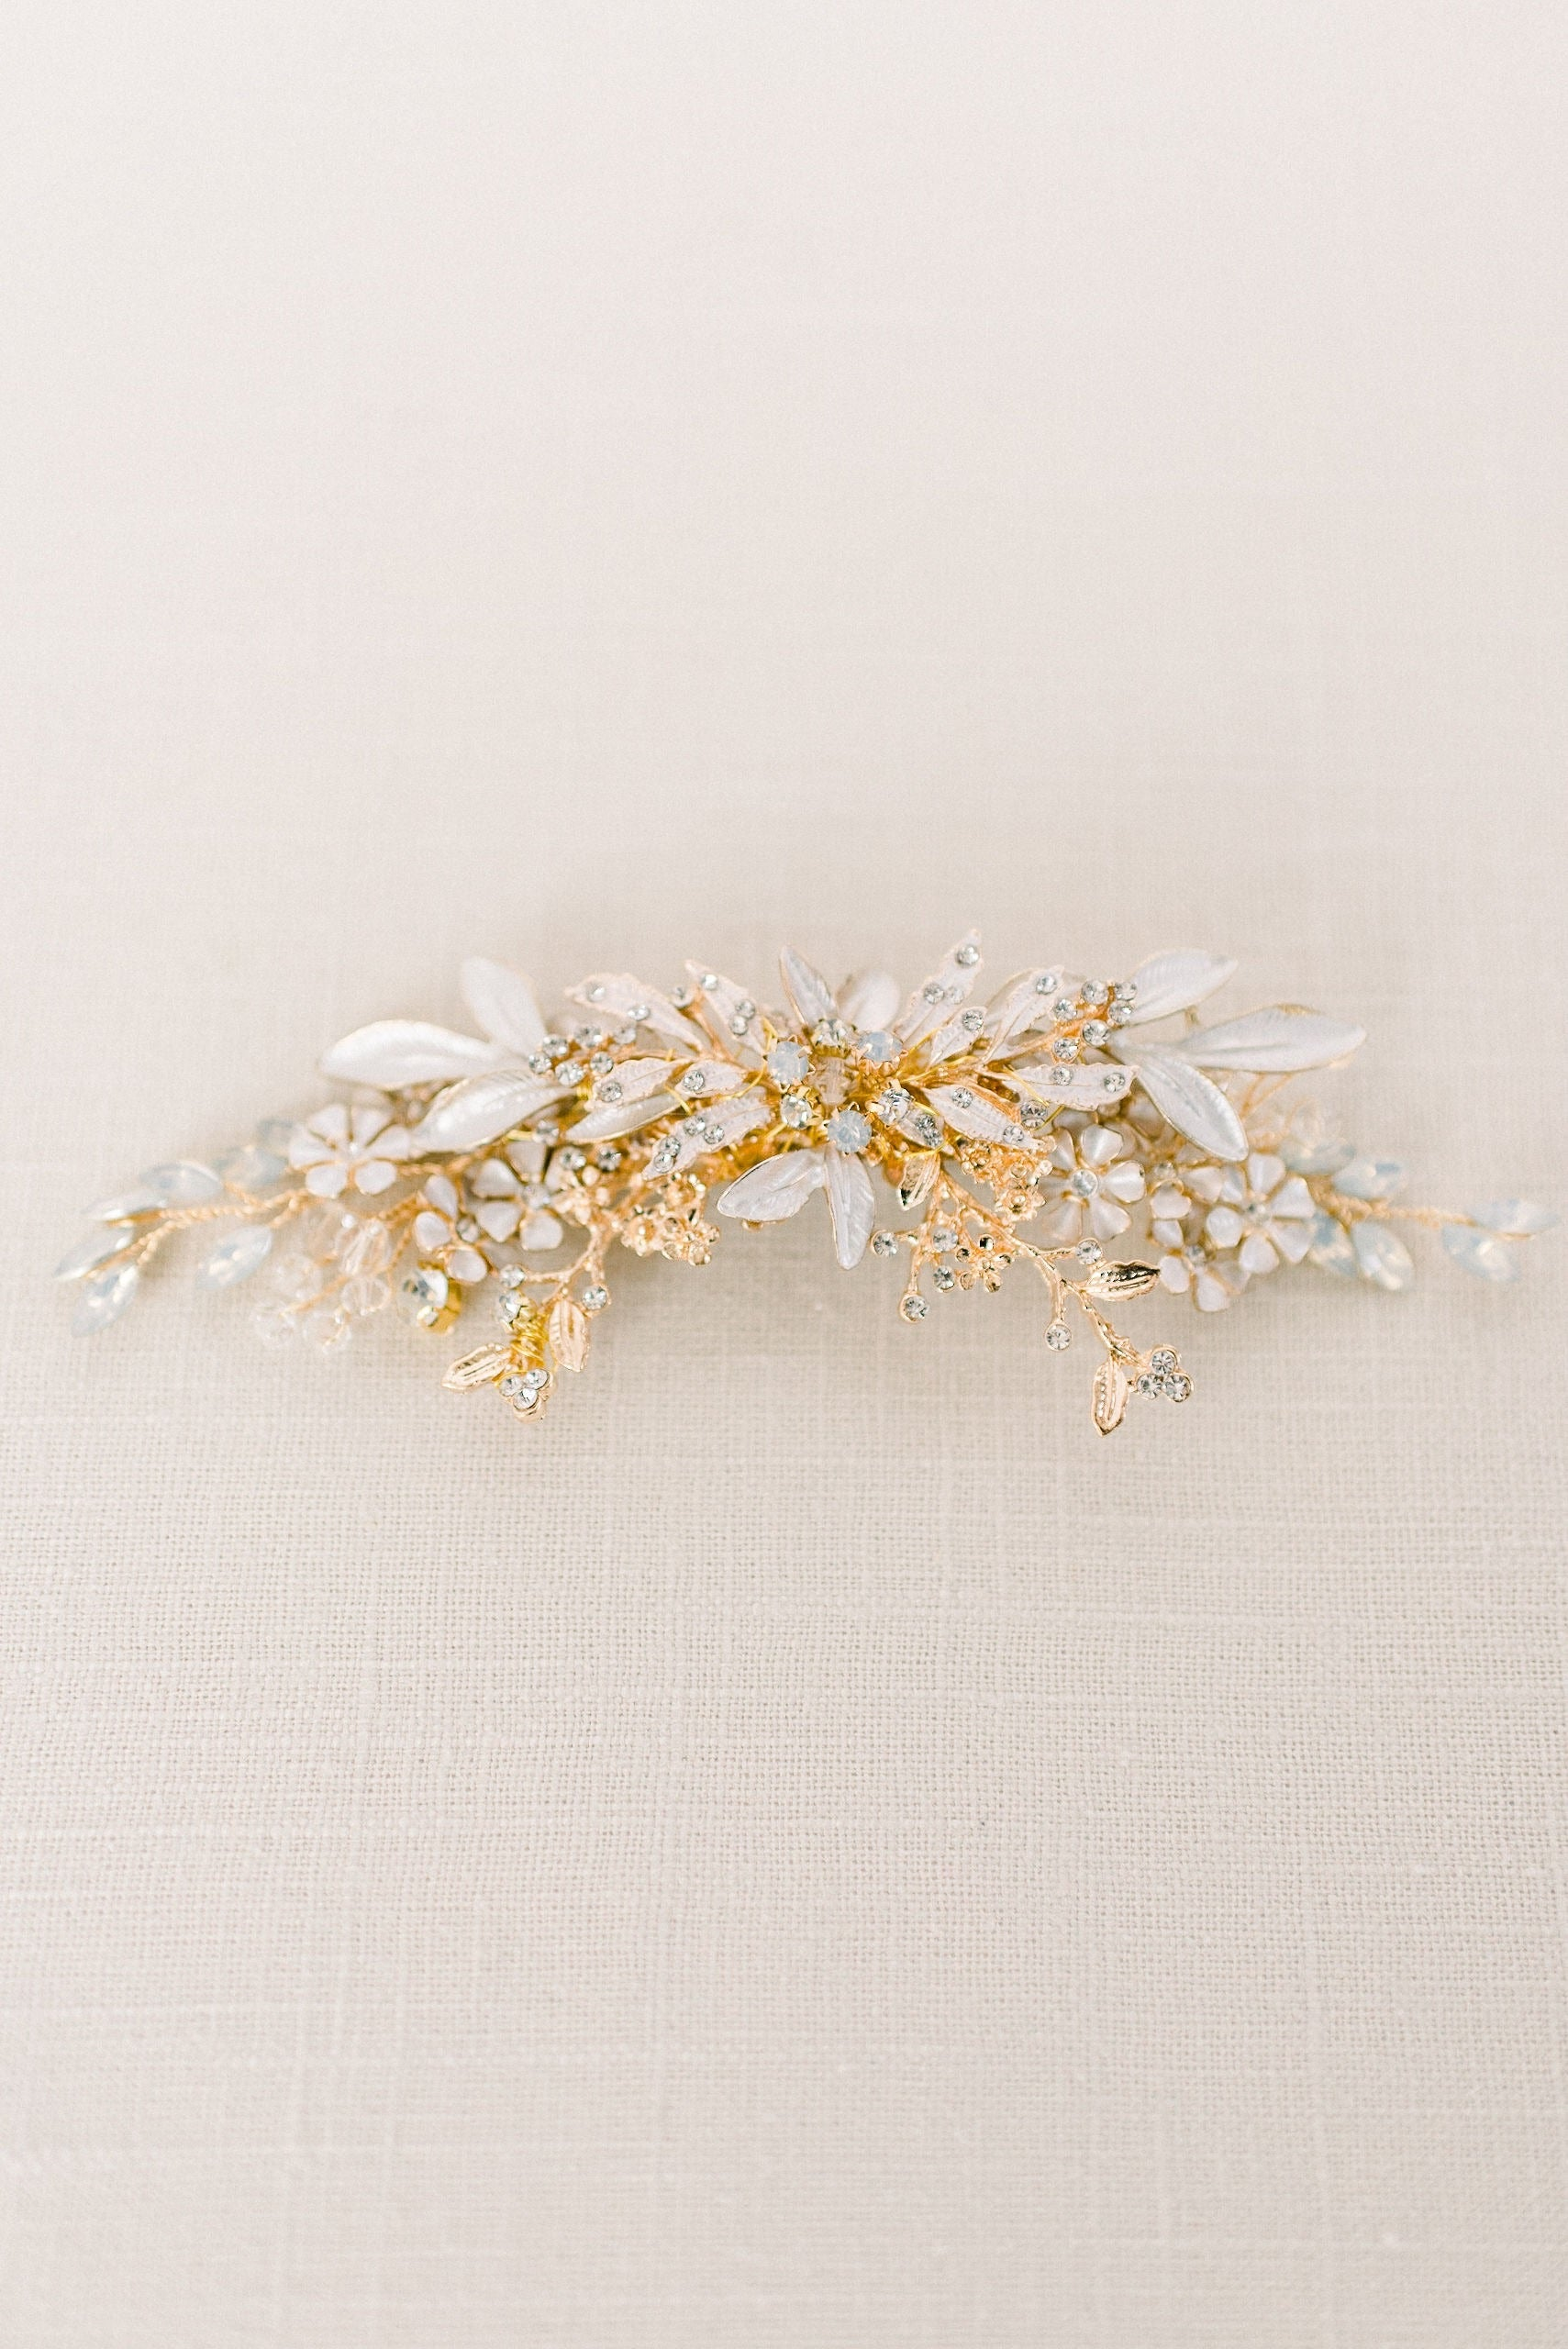 Opal and gold rhinestone headpiece - style 4003 - Ready to ship - Tessa Kim